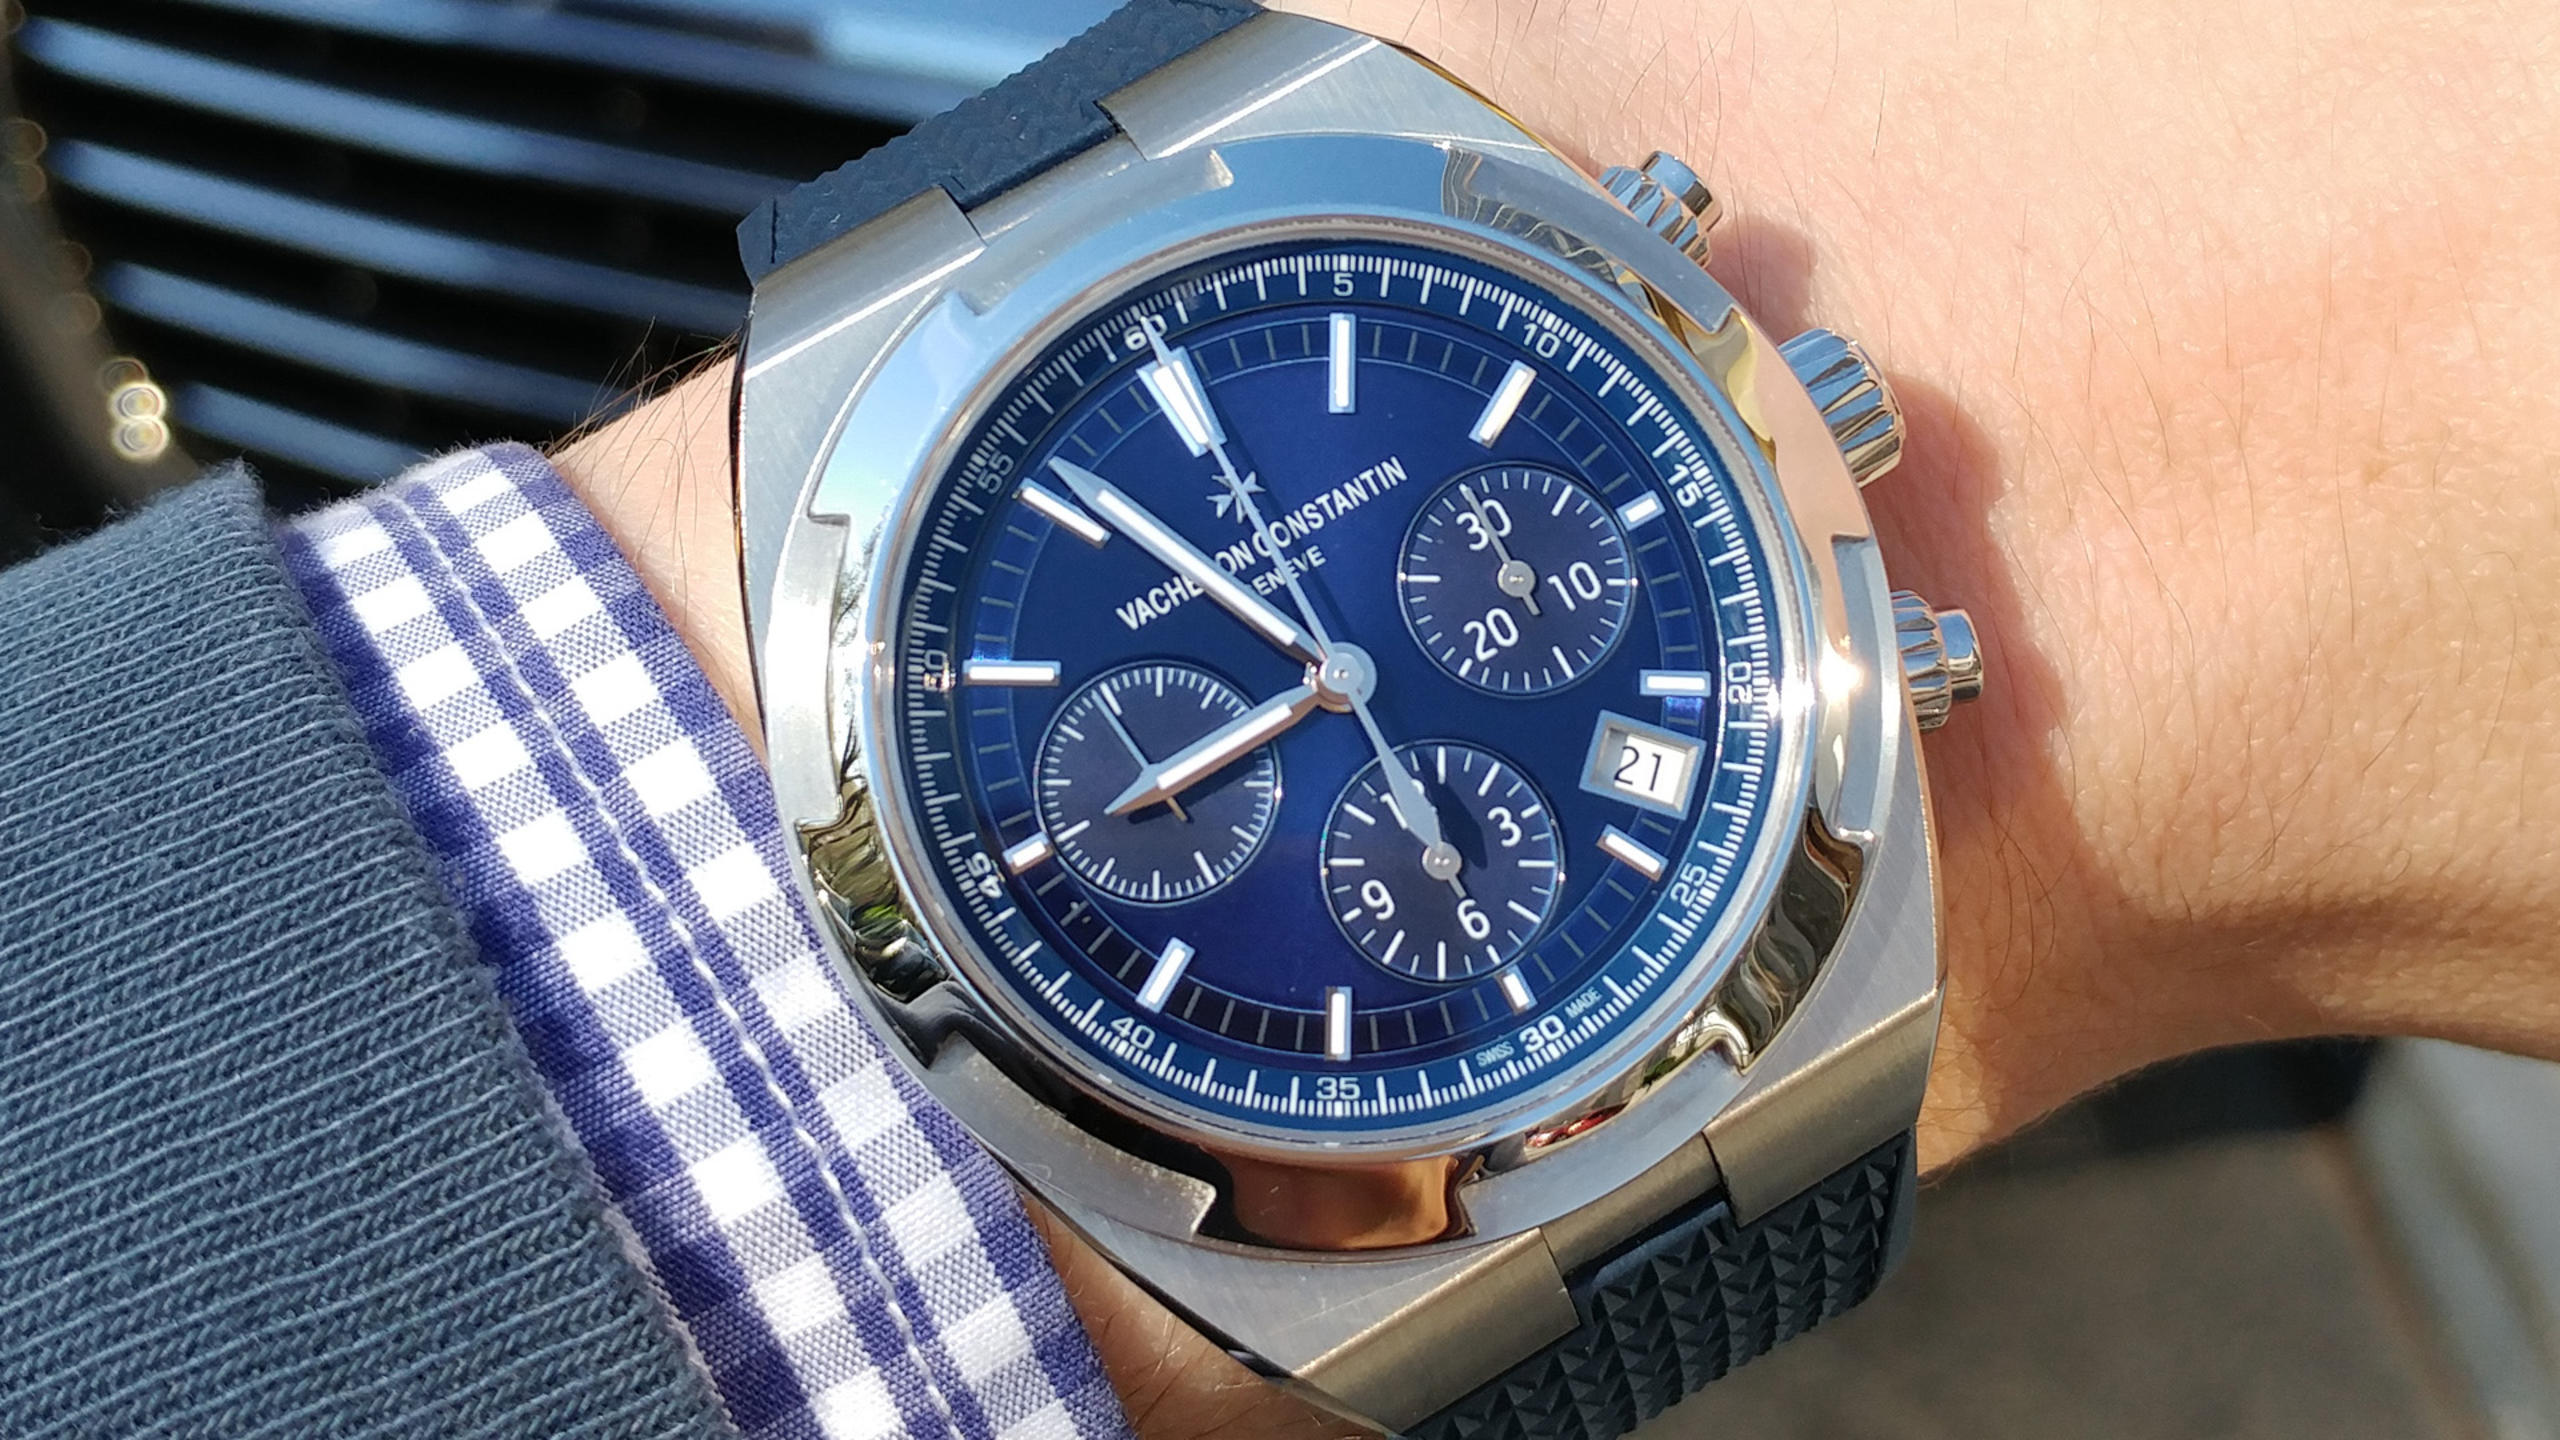 On The Wrist: The Vacheron Constantin Overseas Chrono